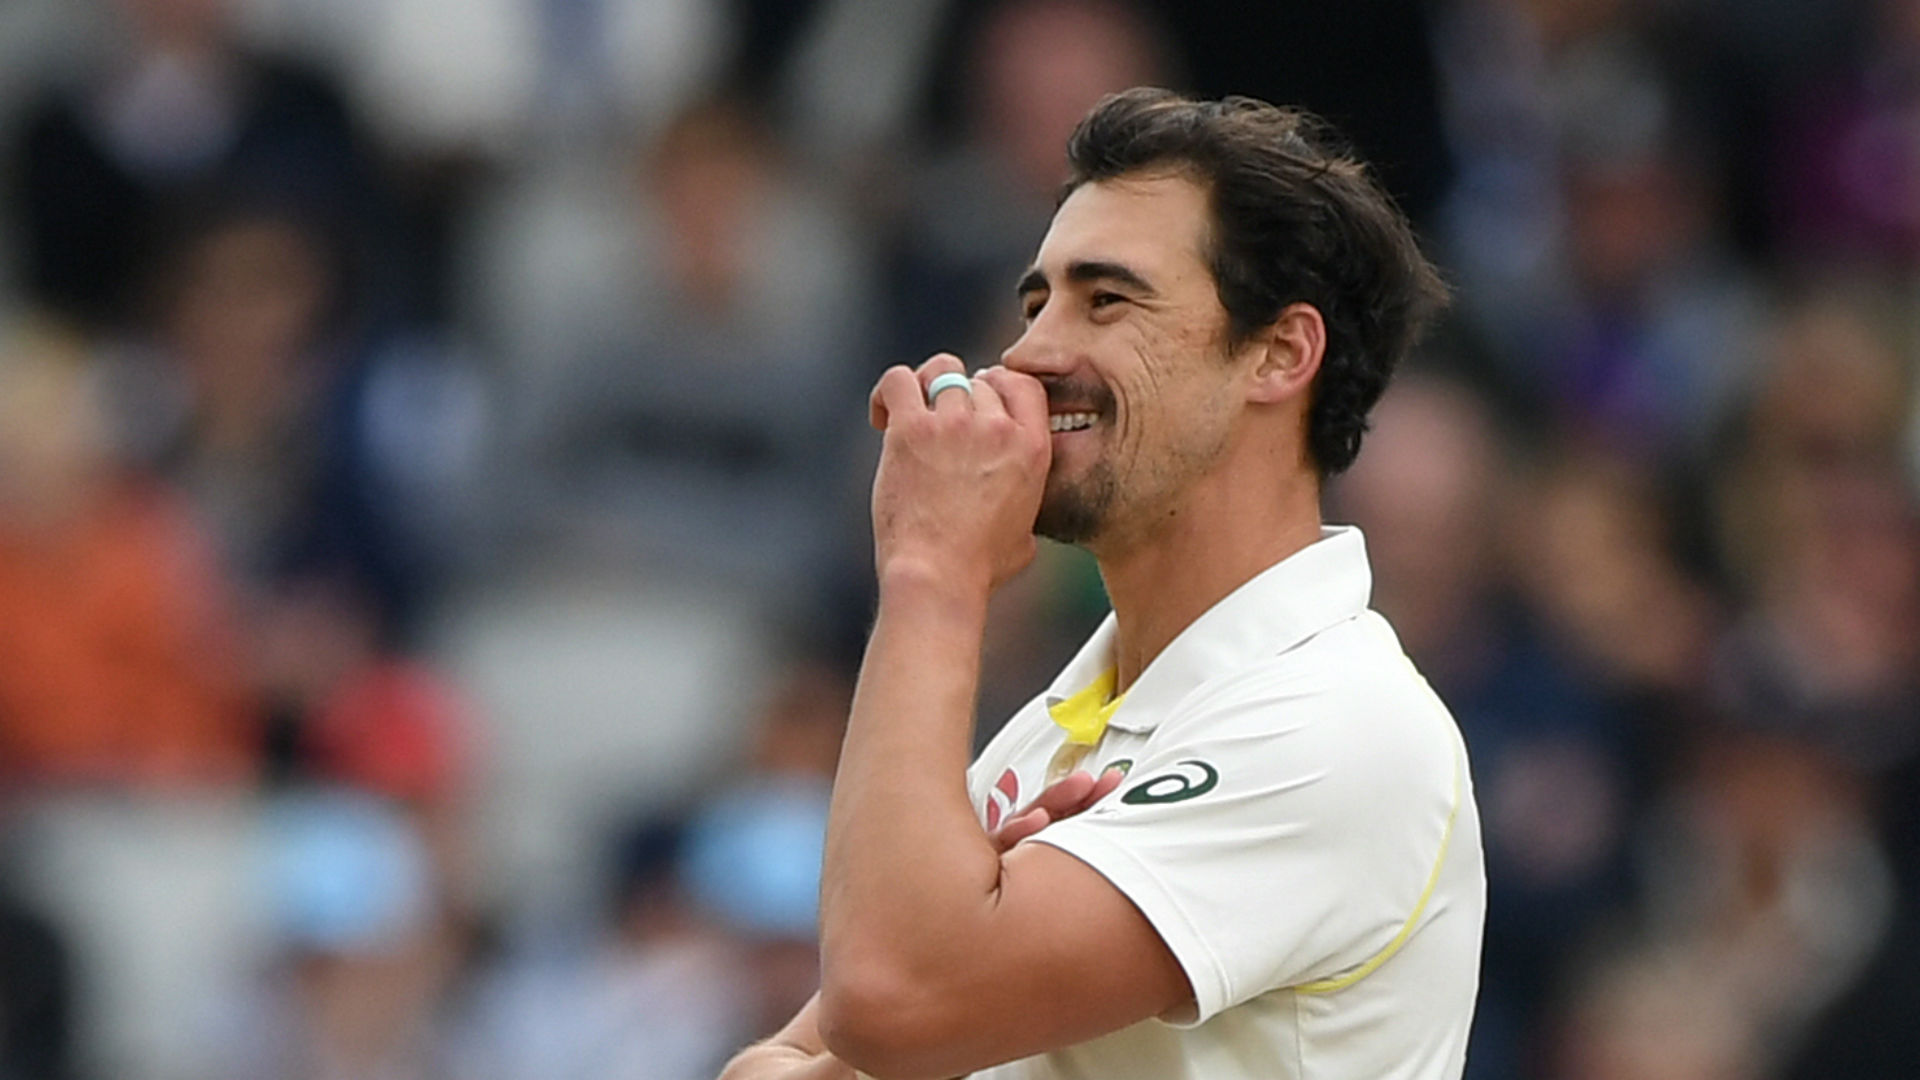 Despite scoring 54 not out and finishing with respectable bowling figures at Old Trafford, Mitchell Starc has been dropped by Australia.